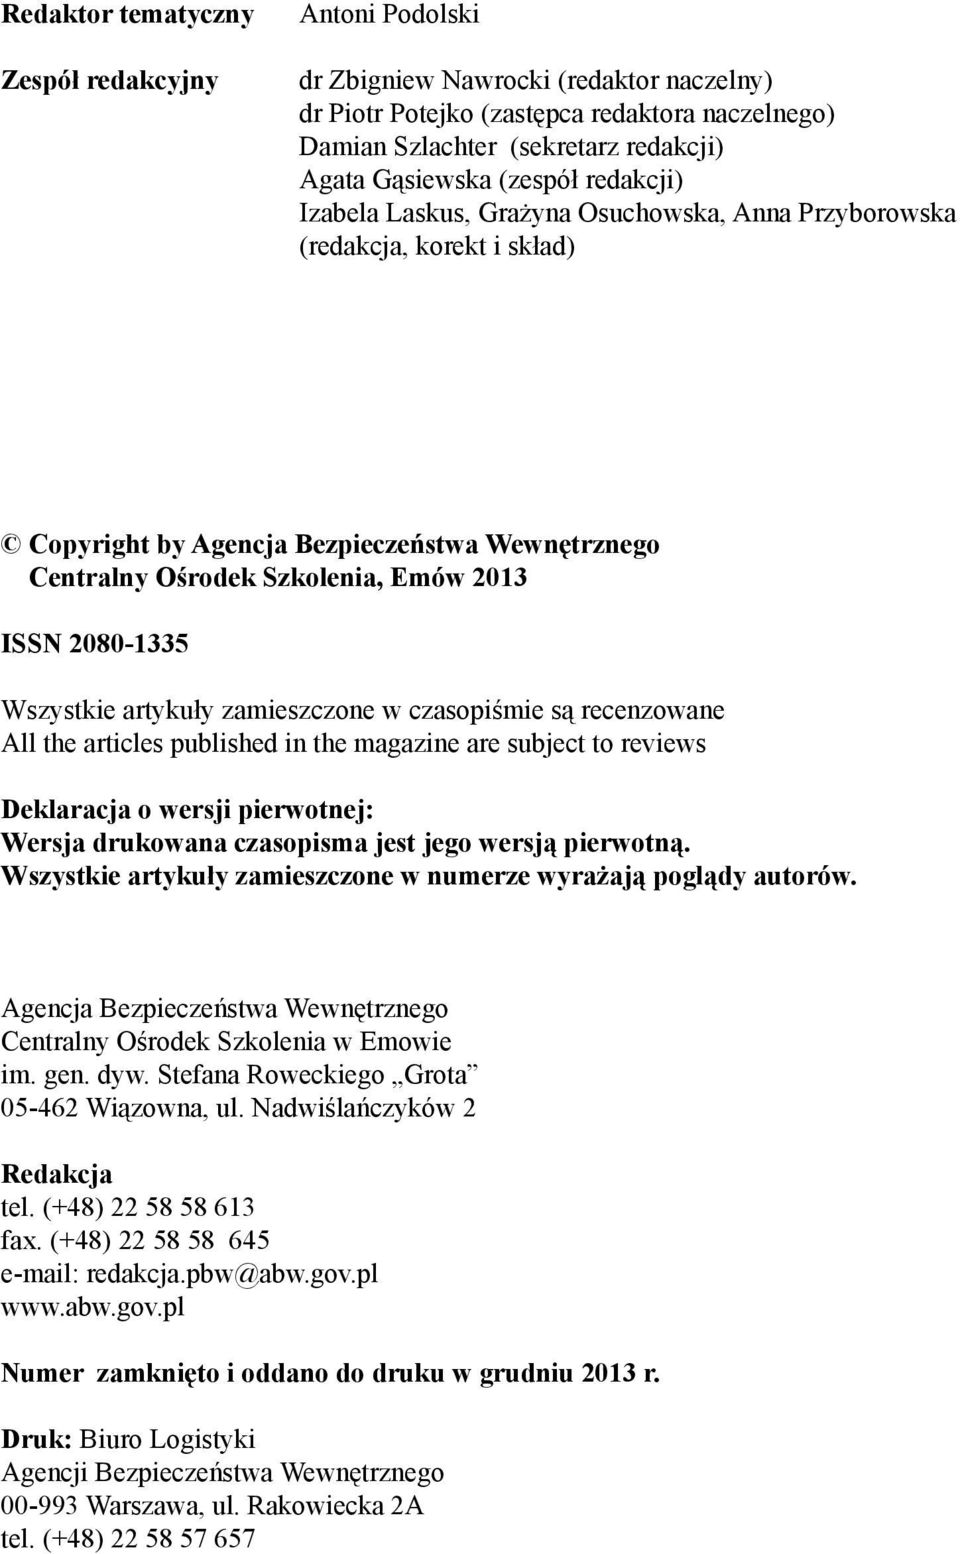 2080-1335 Wszystkie artykuły zamieszczone w czasopiśmie są recenzowane All the articles published in the magazine are subject to reviews Deklaracja o wersji pierwotnej: Wersja drukowana czasopisma